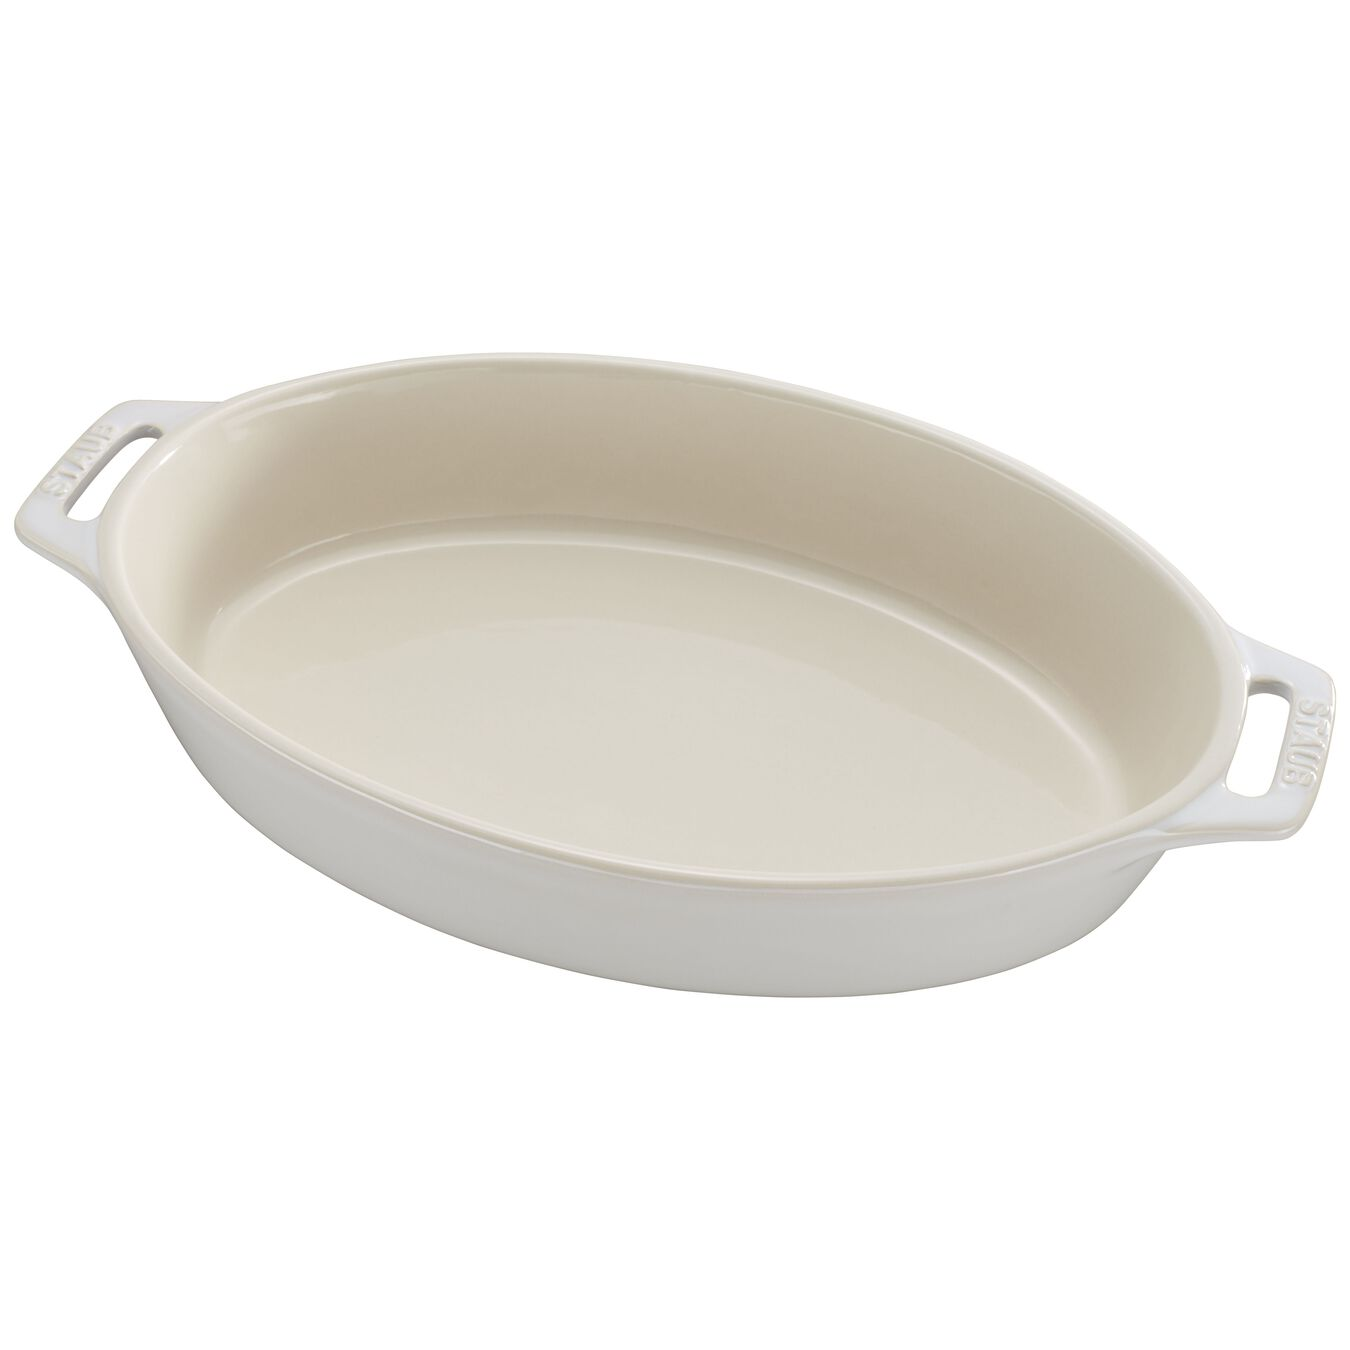 11-inch Oval Baking Dish - Rustic Ivory,,large 3